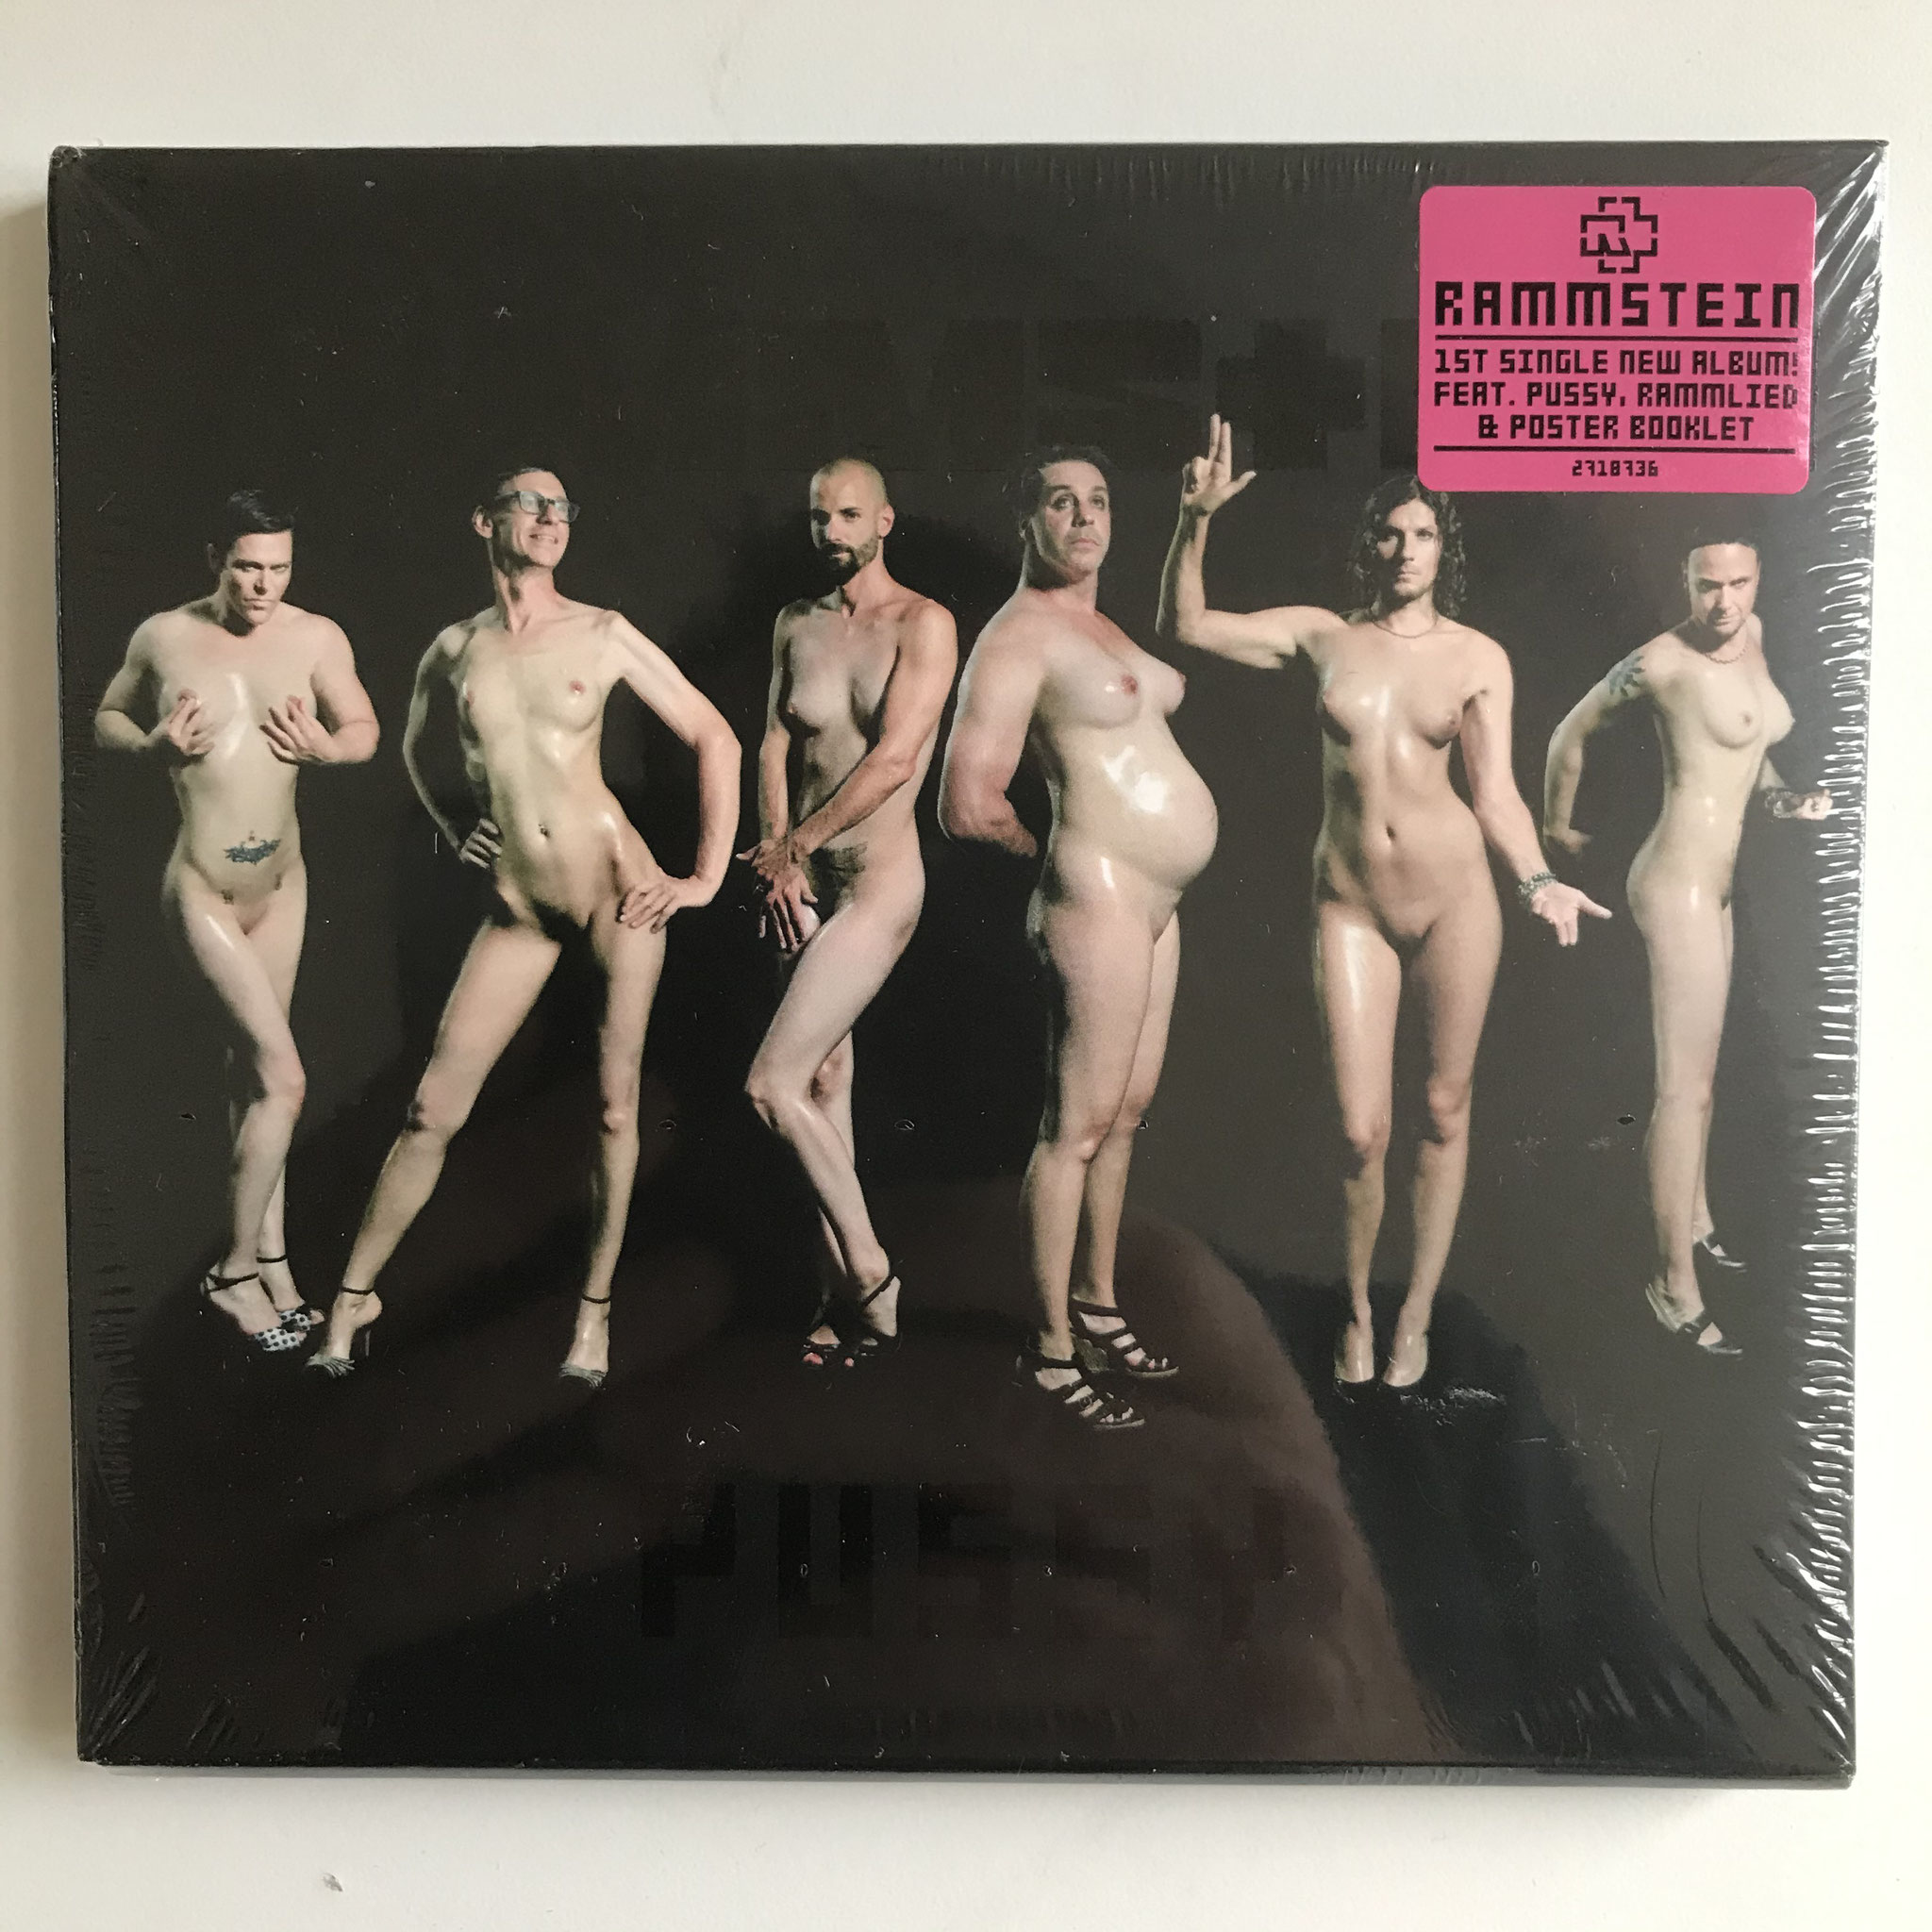 CD, Single, Limited Edition, Factory Sealed